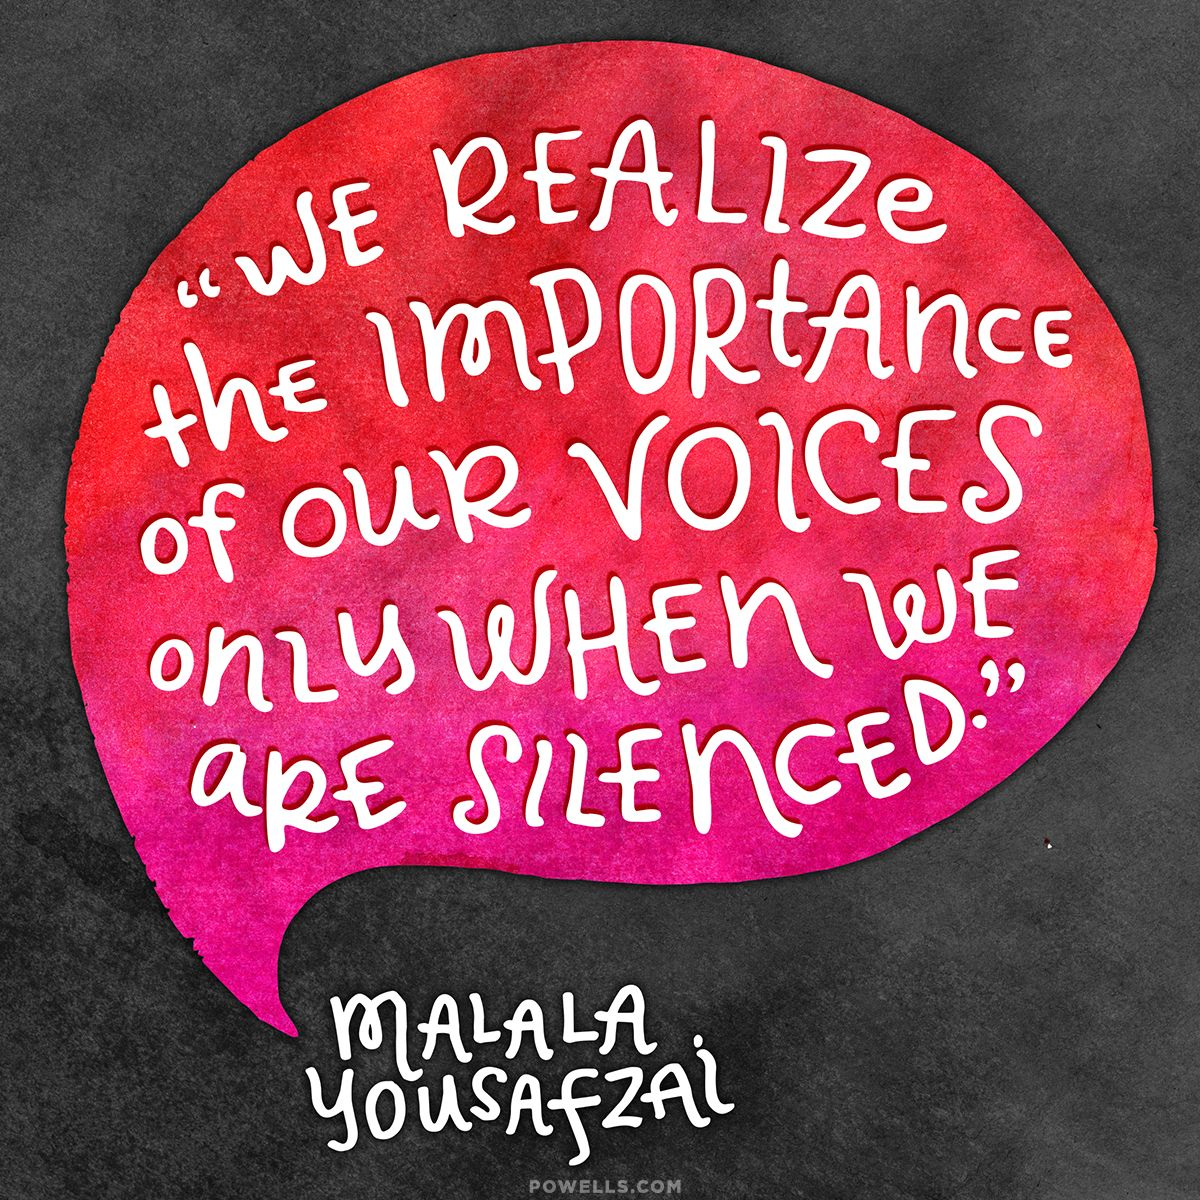 Congratulations on the Nobel Peace Prize Malala! #quote